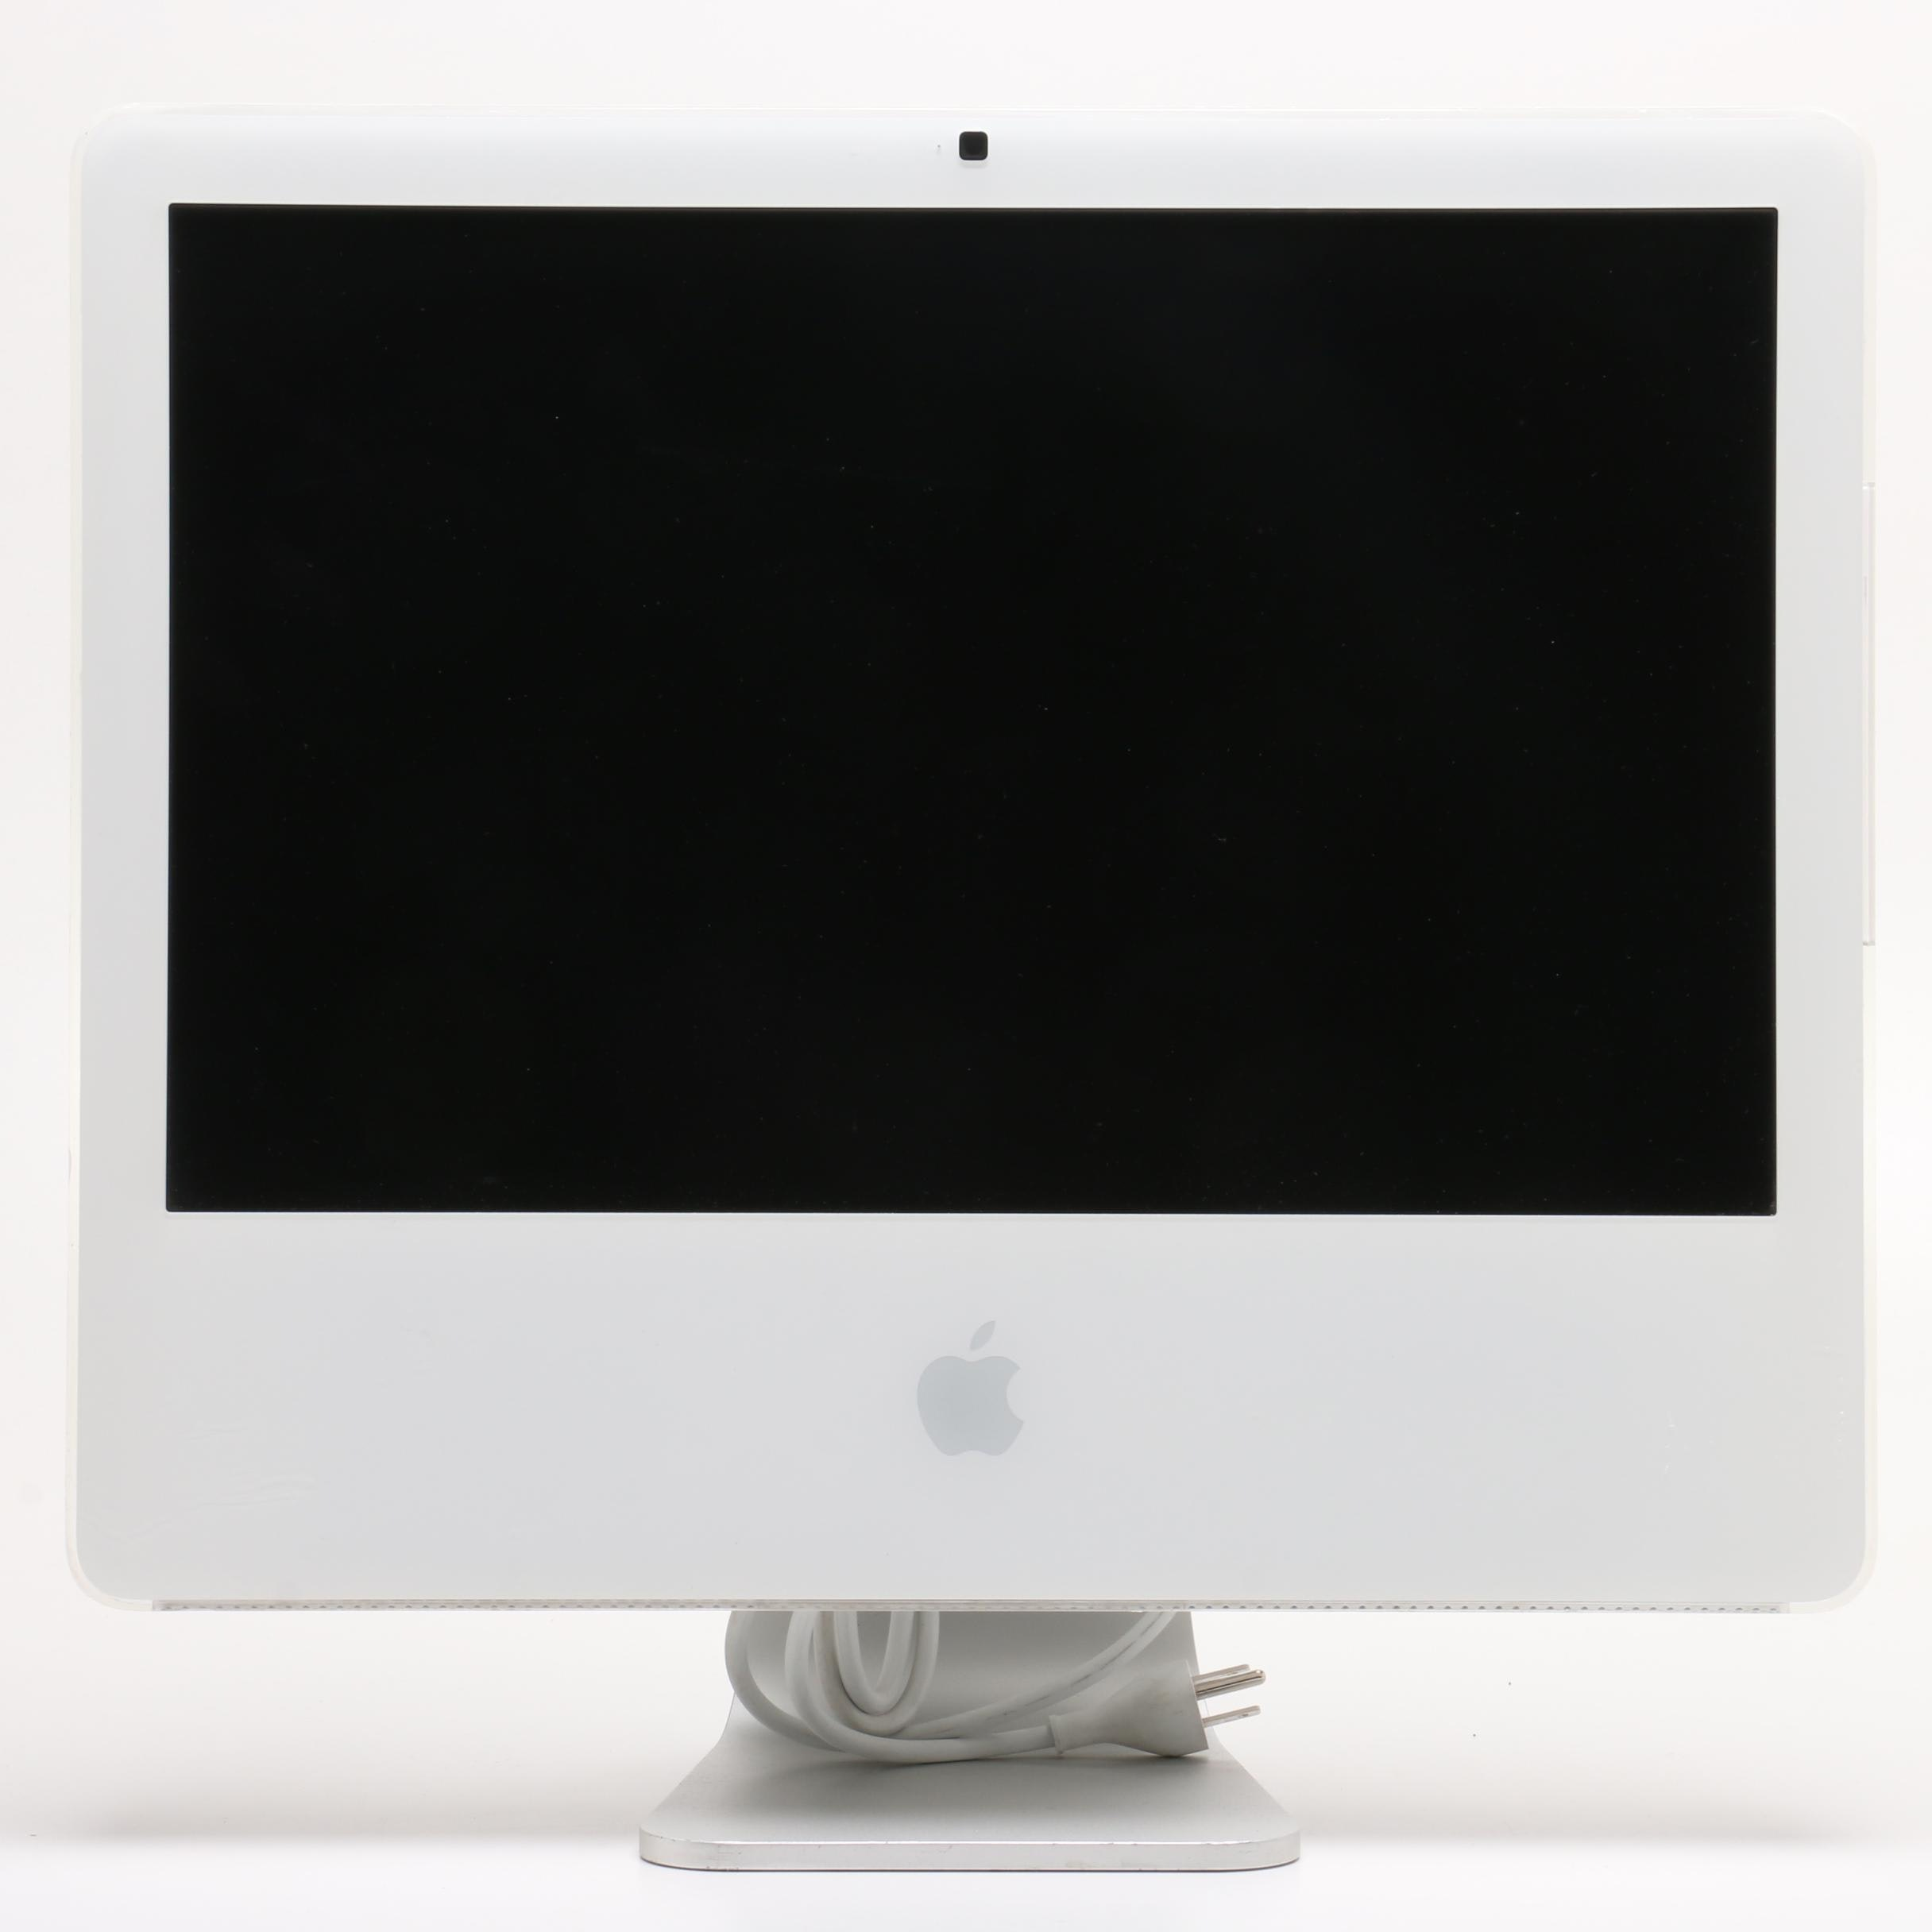 "20"" Apple iMac Desktop Computer in White"